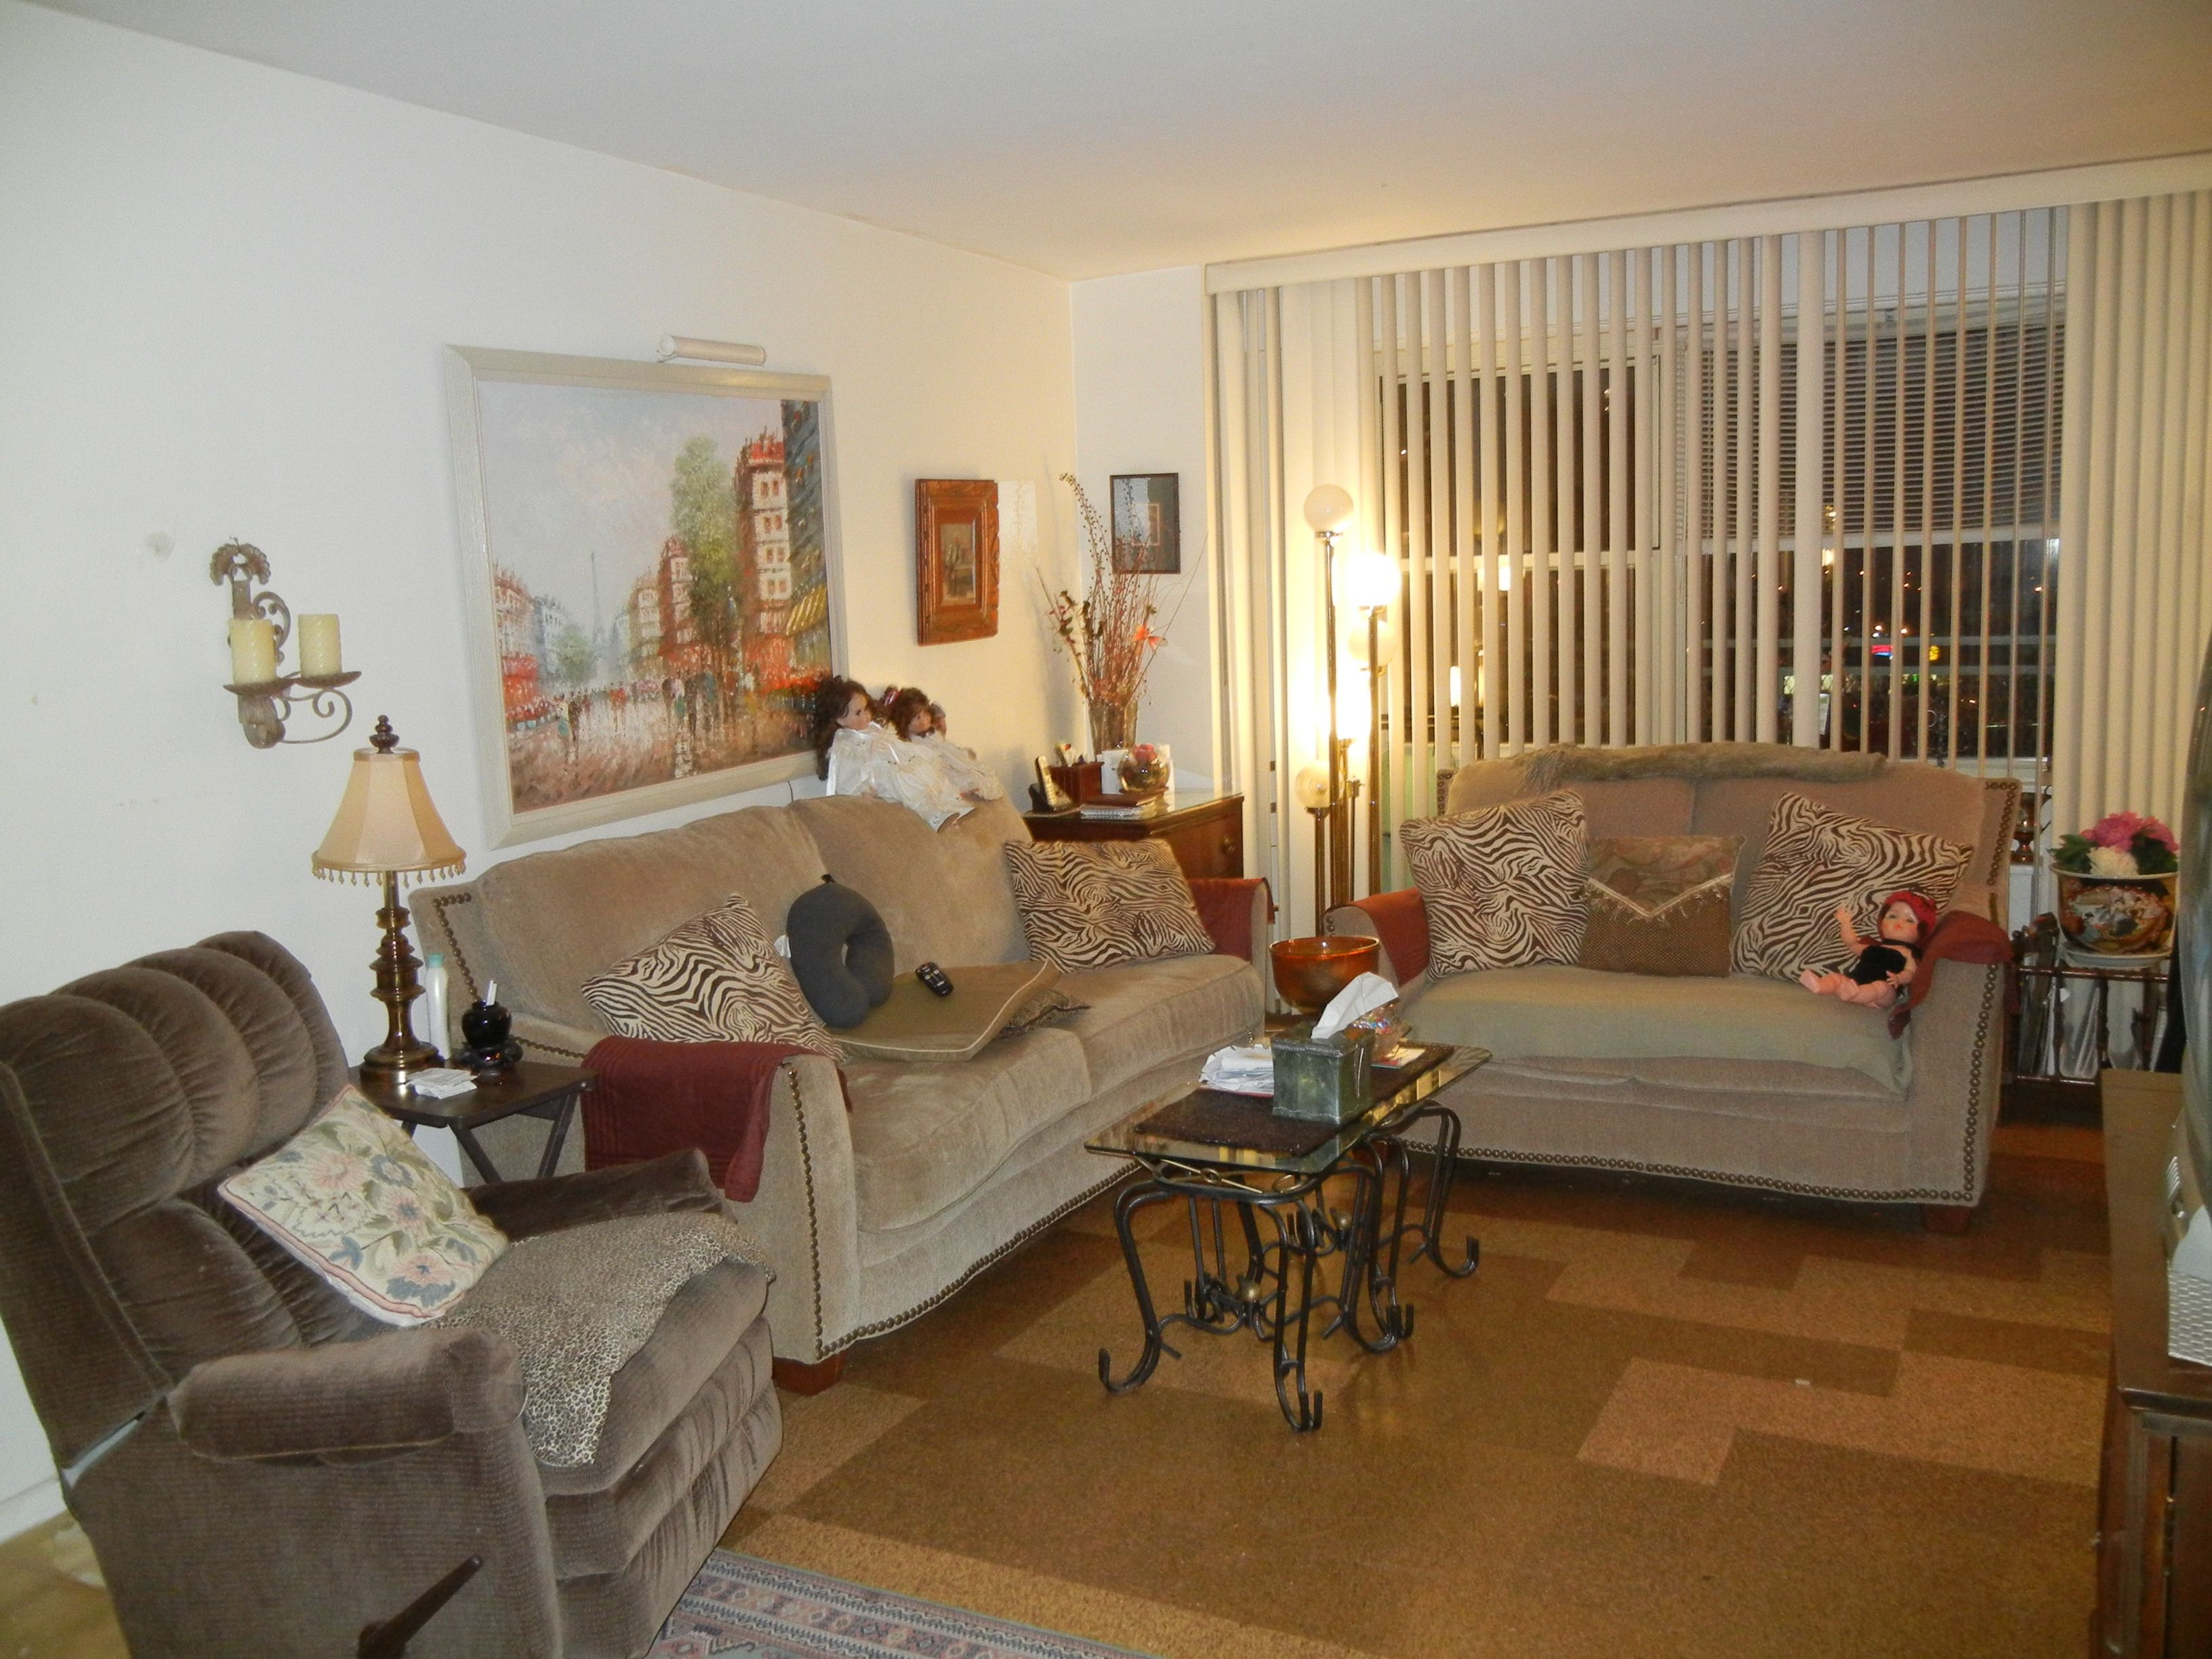 Trump Village Sec 4 2932 West 5 Street Brooklyn Ny 11224 Selling Price 219 000 Trump Village Section 4 Coop 1 Bedroom 1 B Home Home Decor Furniture